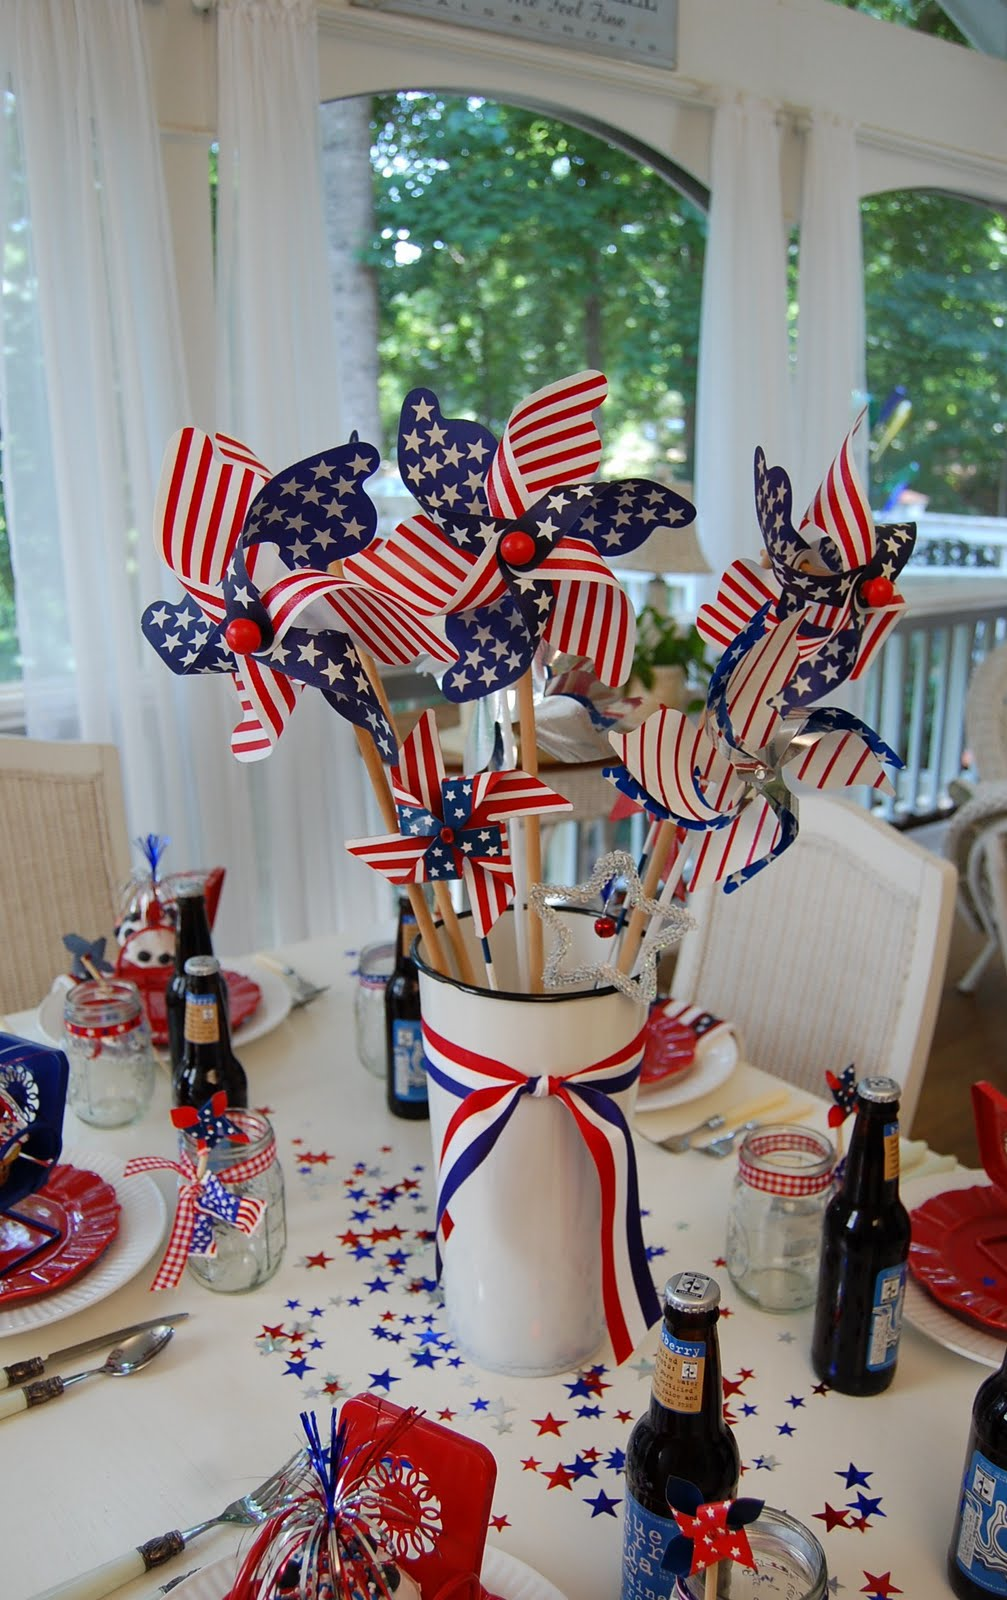 A patriotic celebration table setting for 4 of july decorations